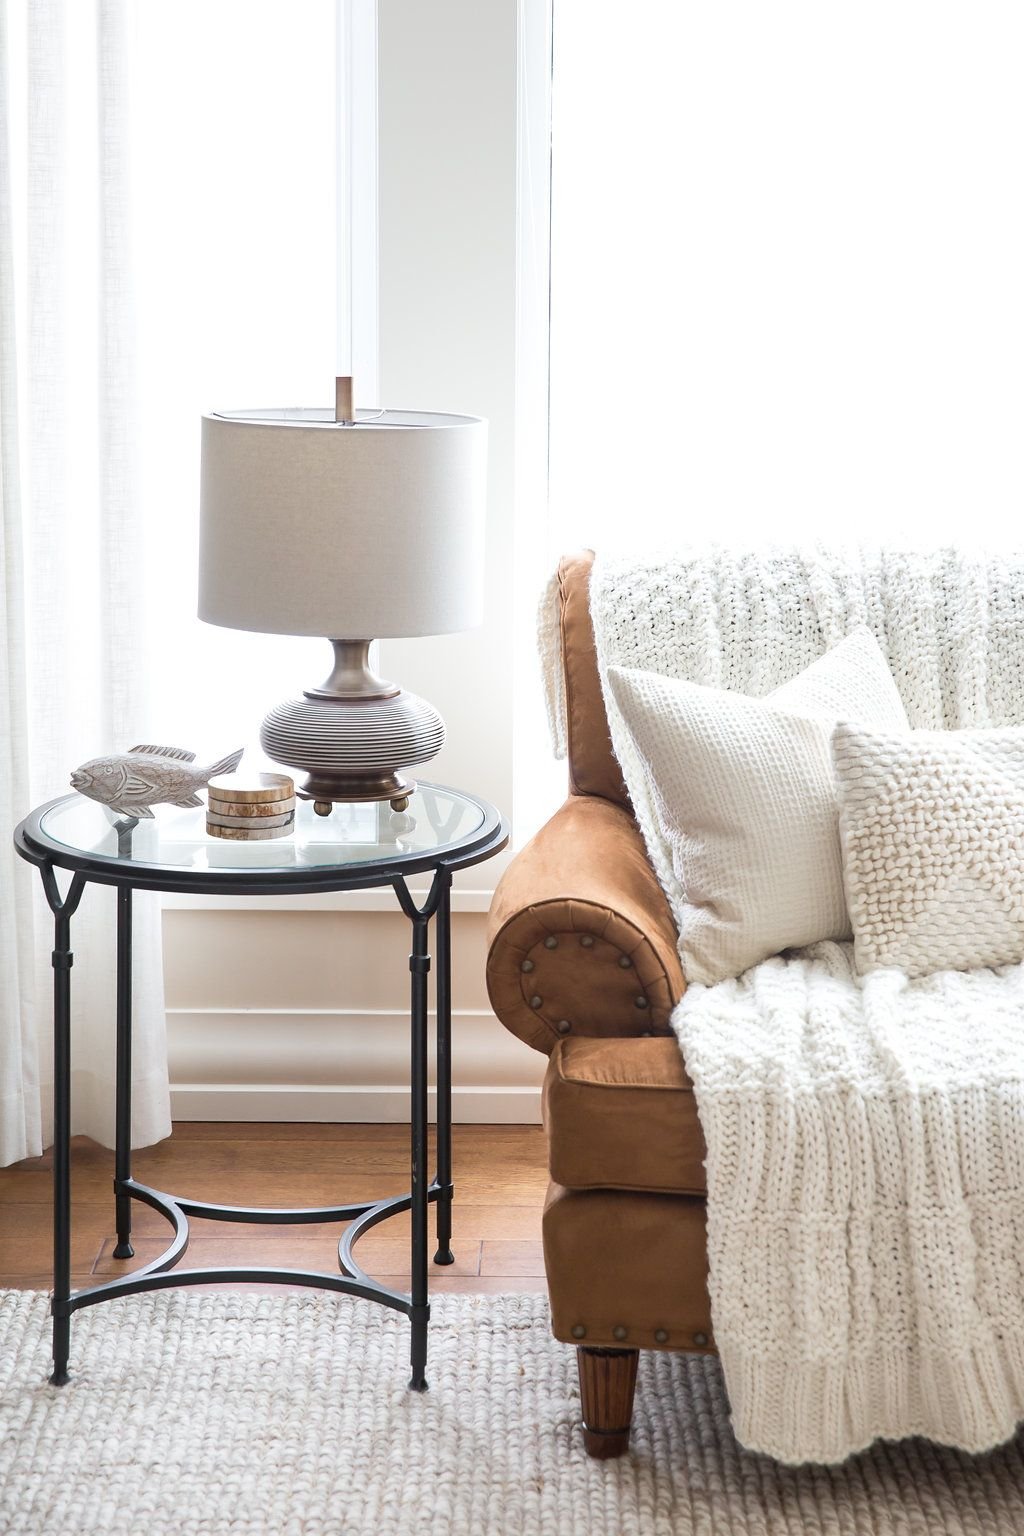 An Urban Cabin Living Room | Cabin, Urban and Upholstery